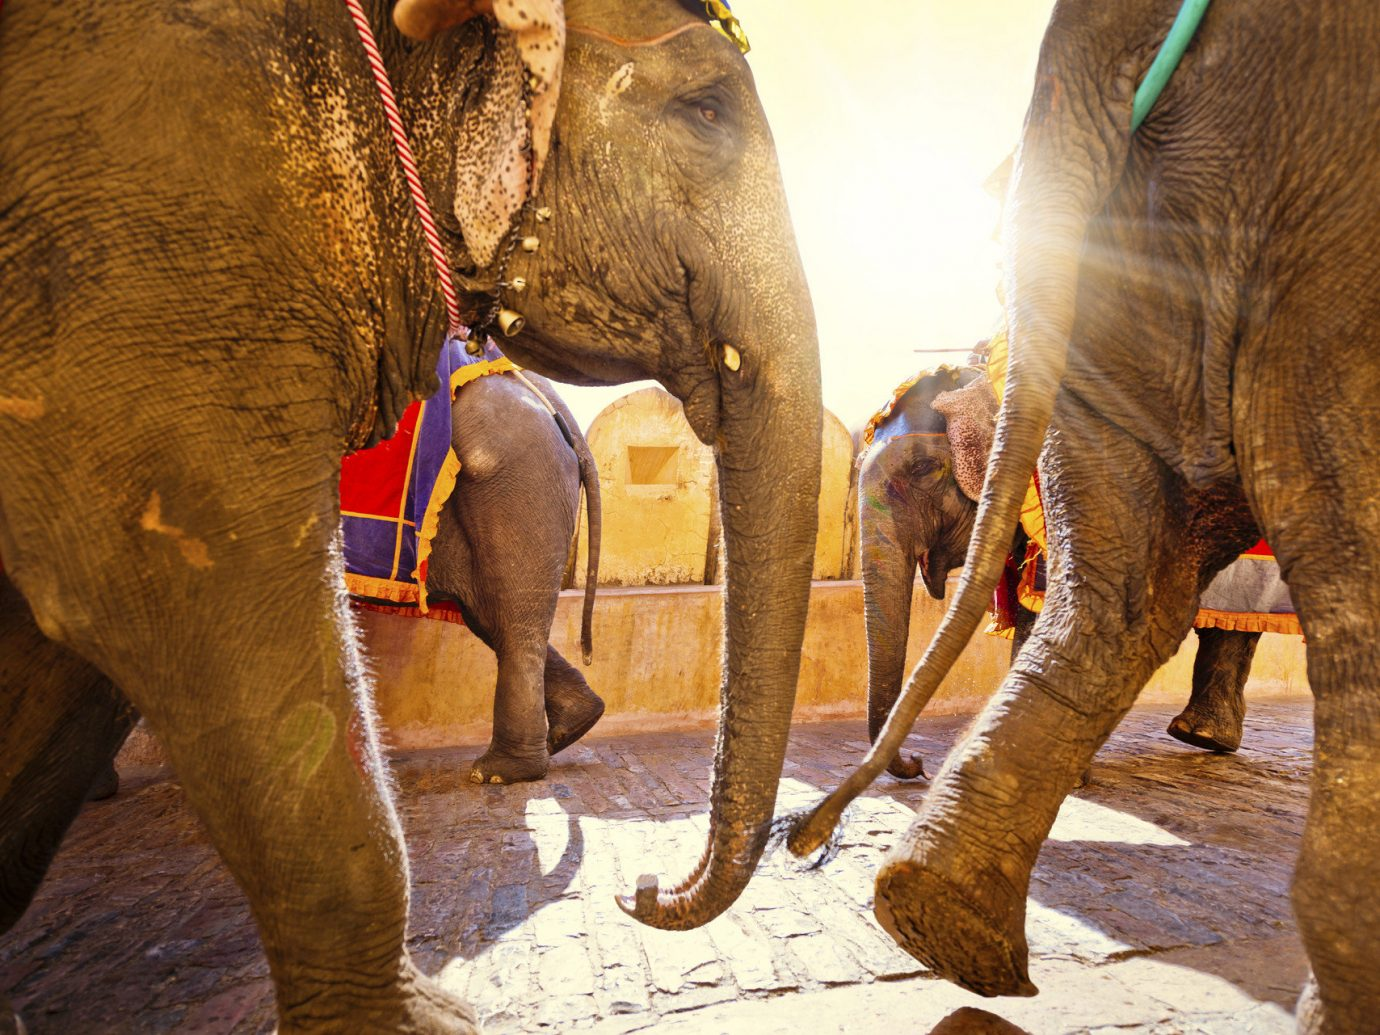 Travel Tips elephant ground outdoor indian elephant elephants and mammoths animal mammal fauna mahout Wildlife zoo trunk